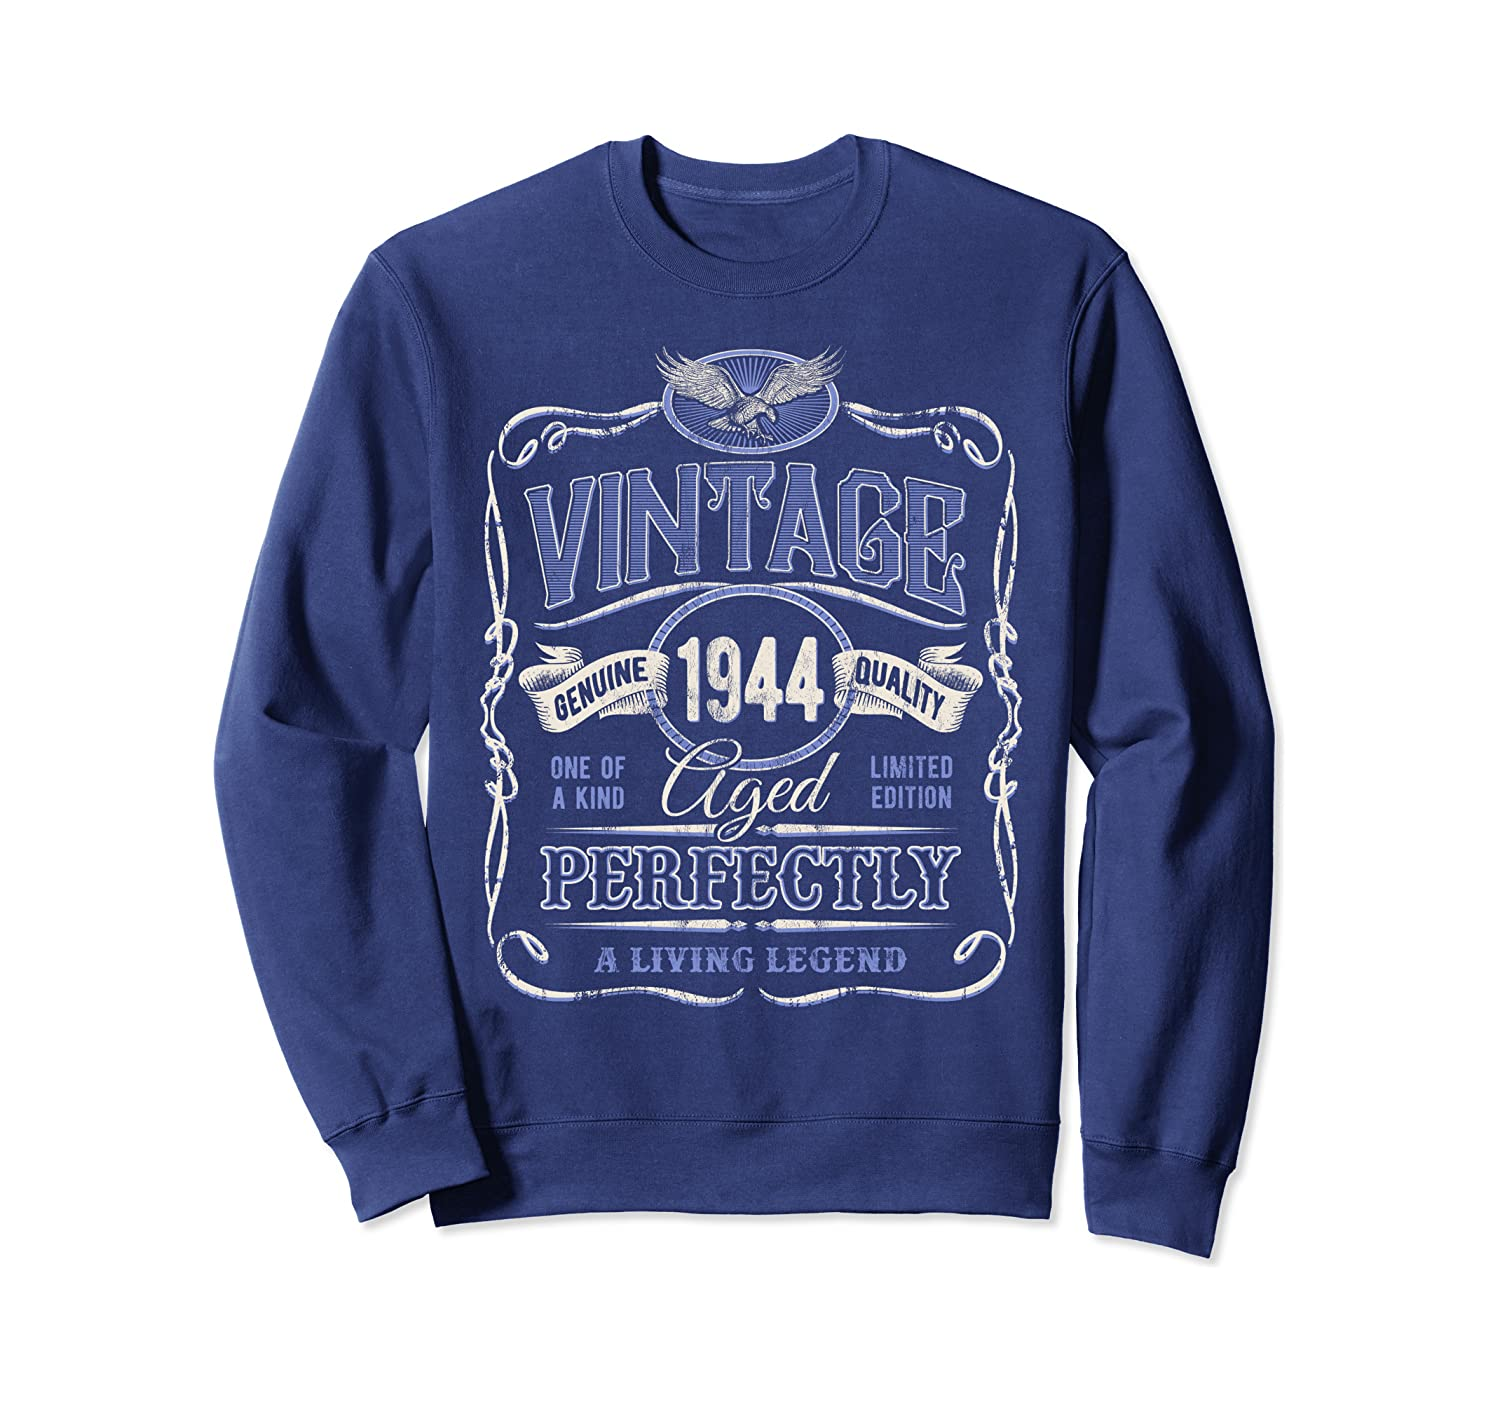 Vintage Premium Made In 1944 Classic 76th Birthday Gift k1 Sweatshirt